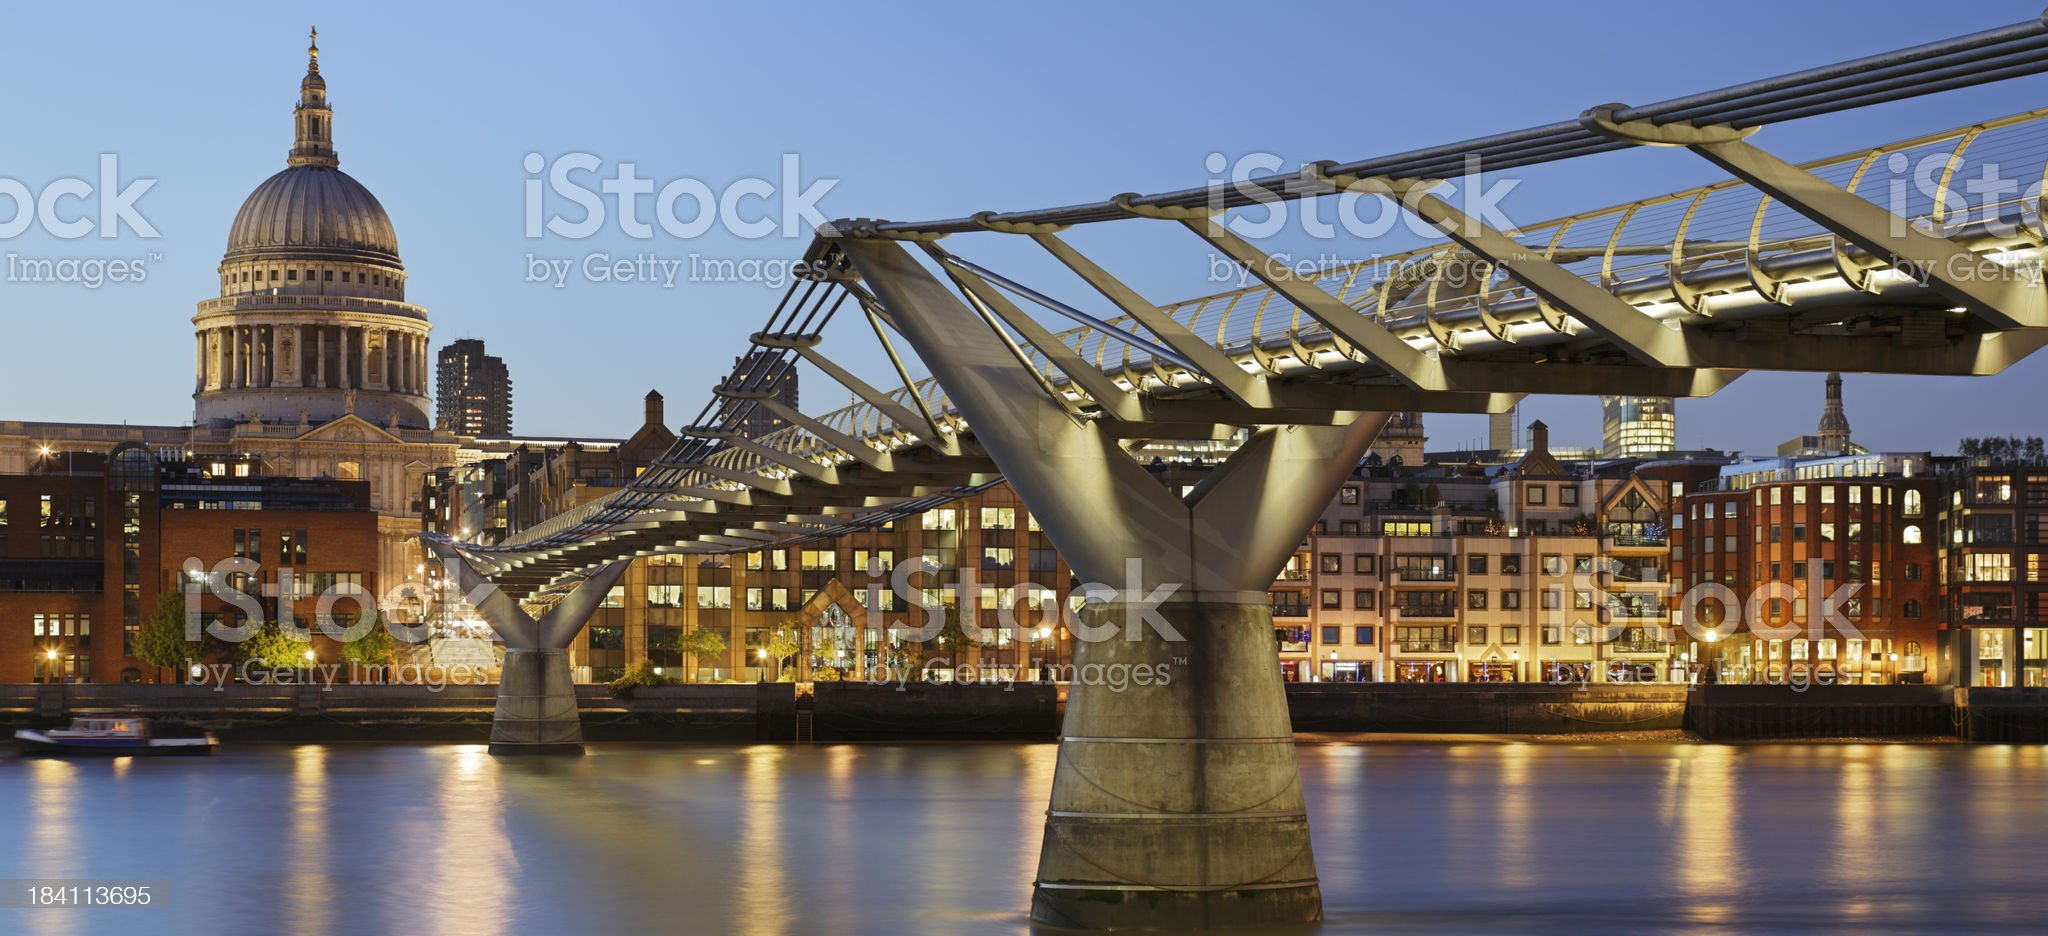 St. Paul's Cathedral royalty-free stock photo